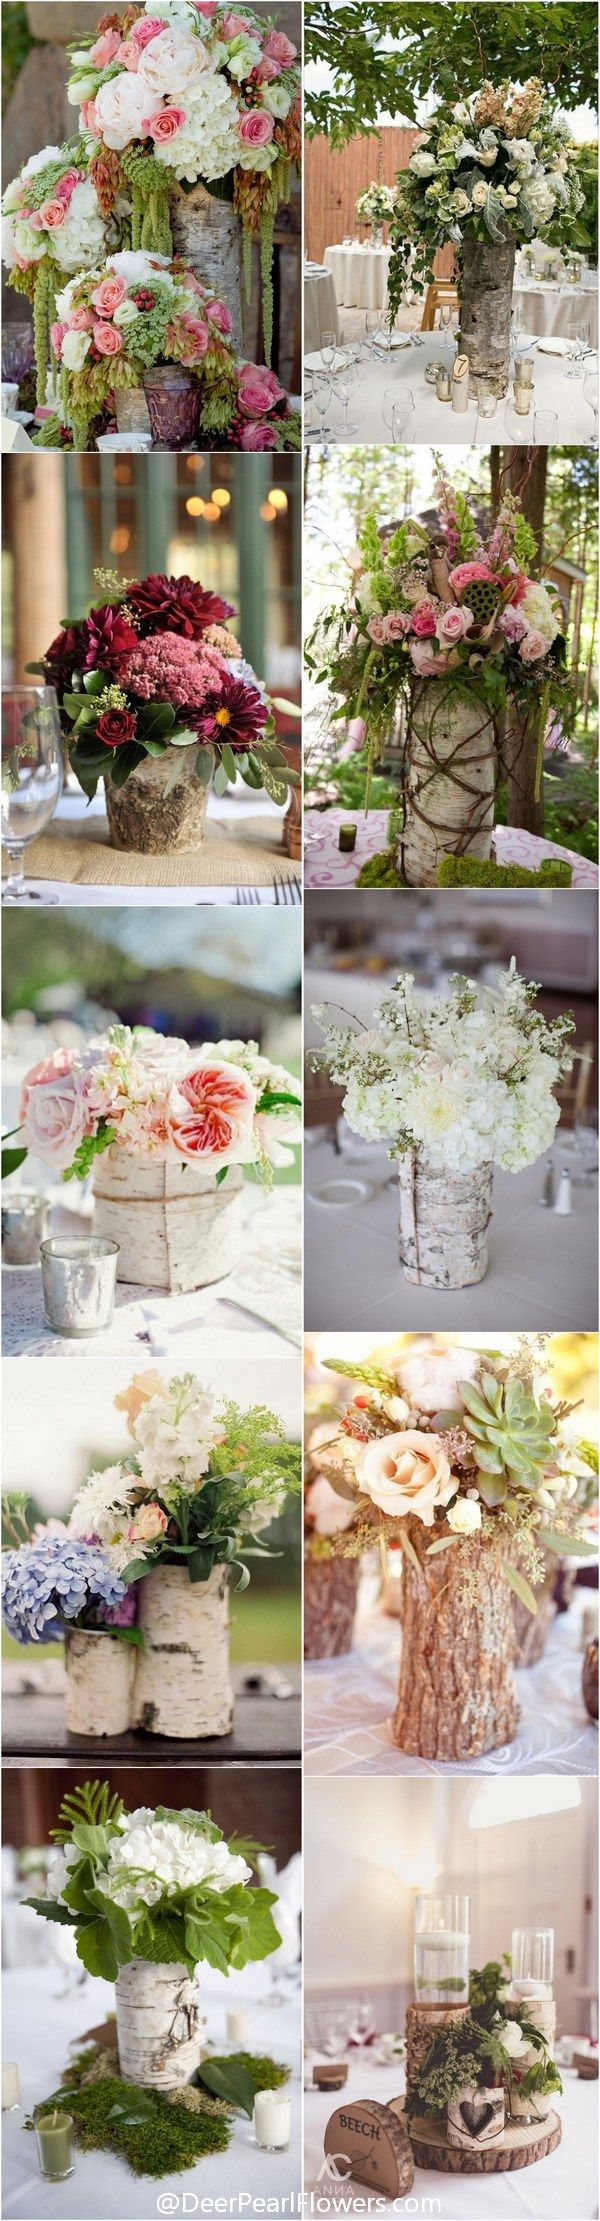 Barn wedding table settings   Rustic Wedding Centerpieces with Bark Container  Rustic wedding